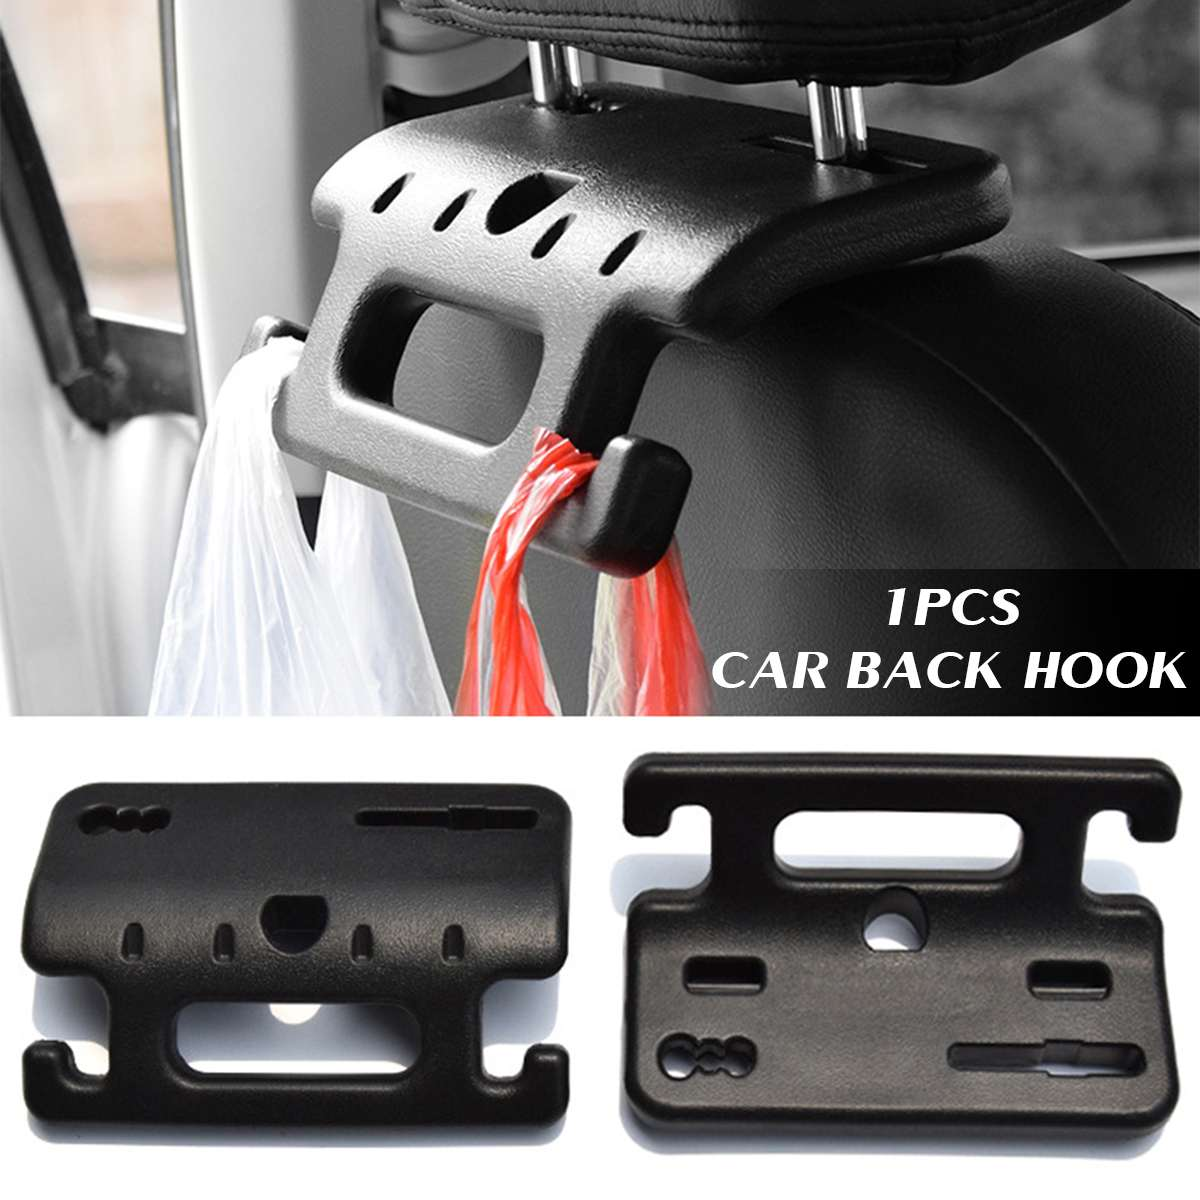 Multifuction Car Chair Handle Hook Vehicle Interior Chair Back Hook Bracket ABS Car Seats Handle Hook Holder For Automobiles